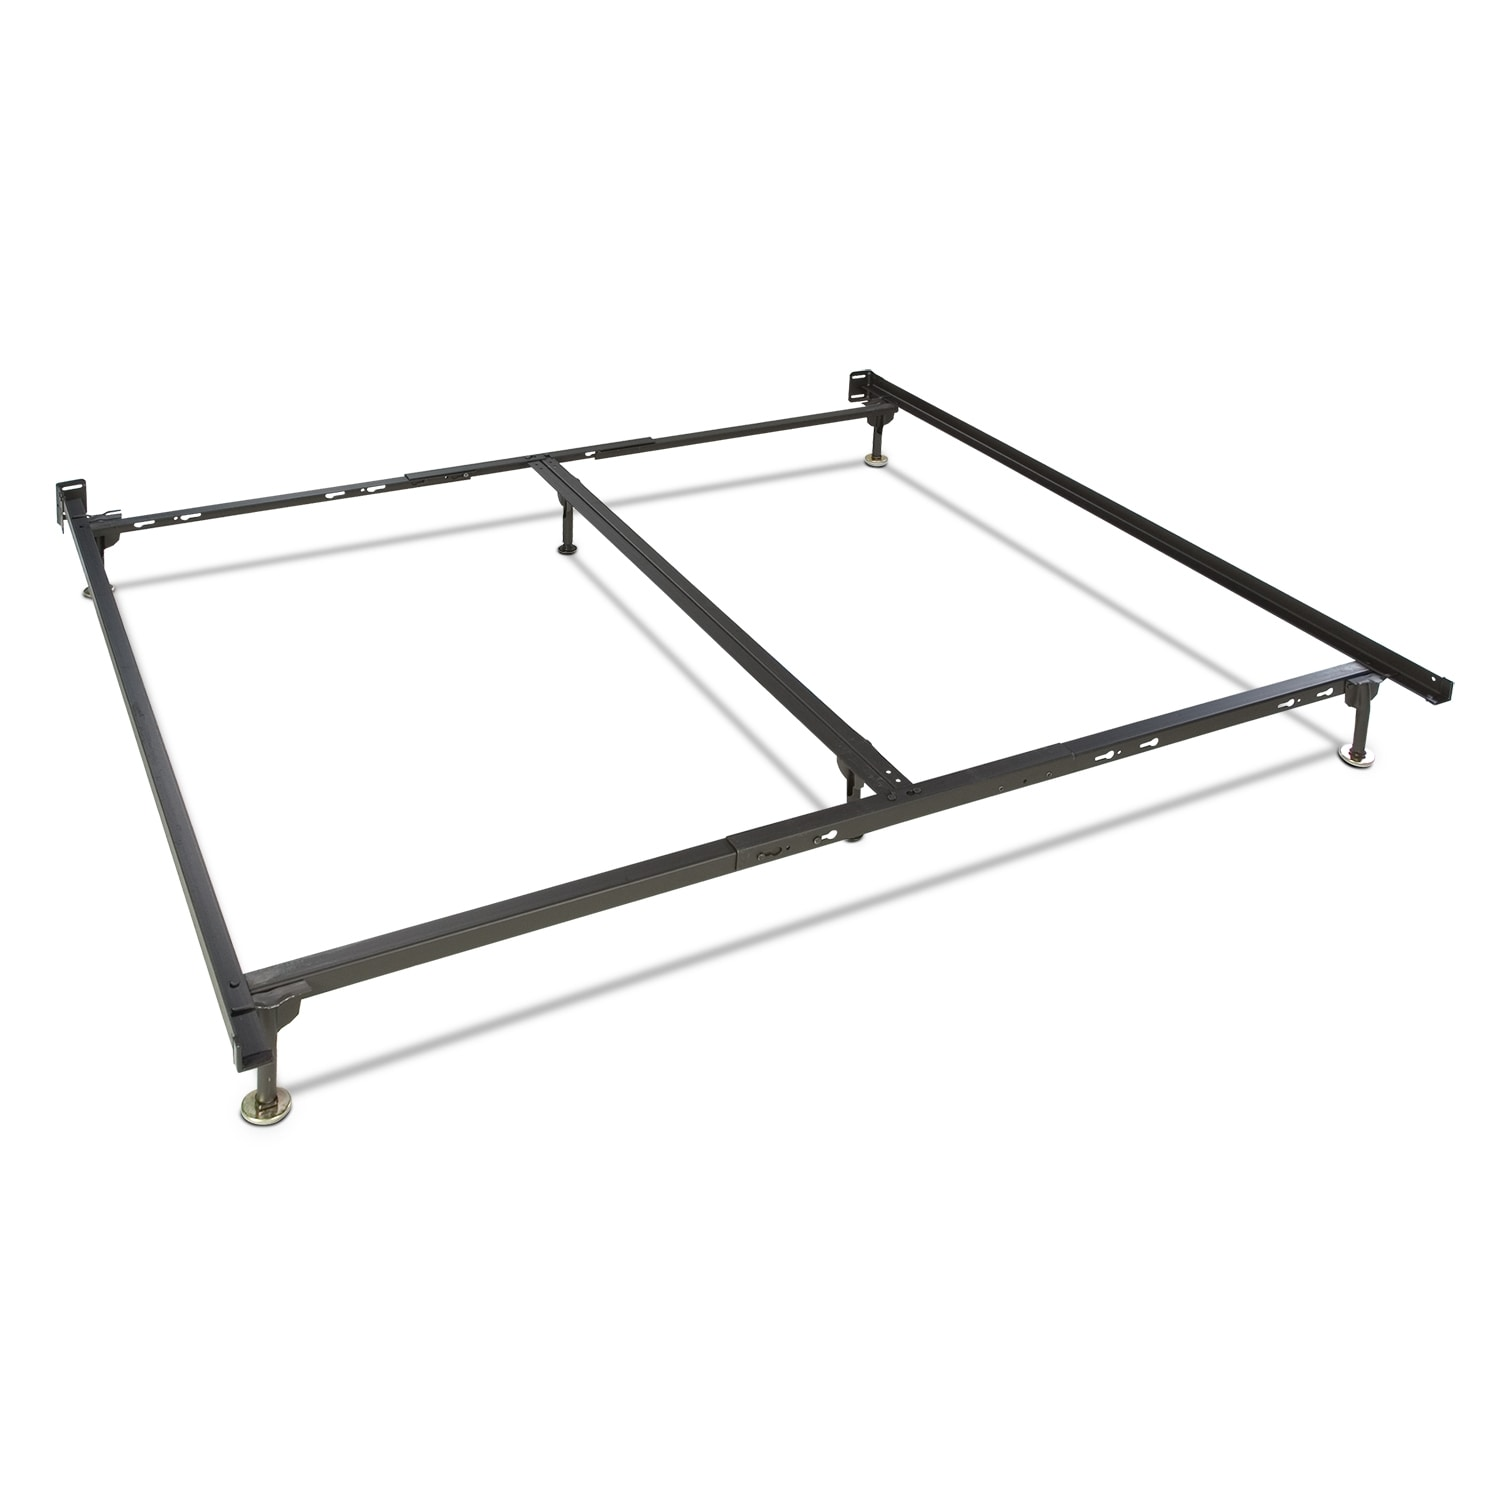 Glideaway Bed Frame Video